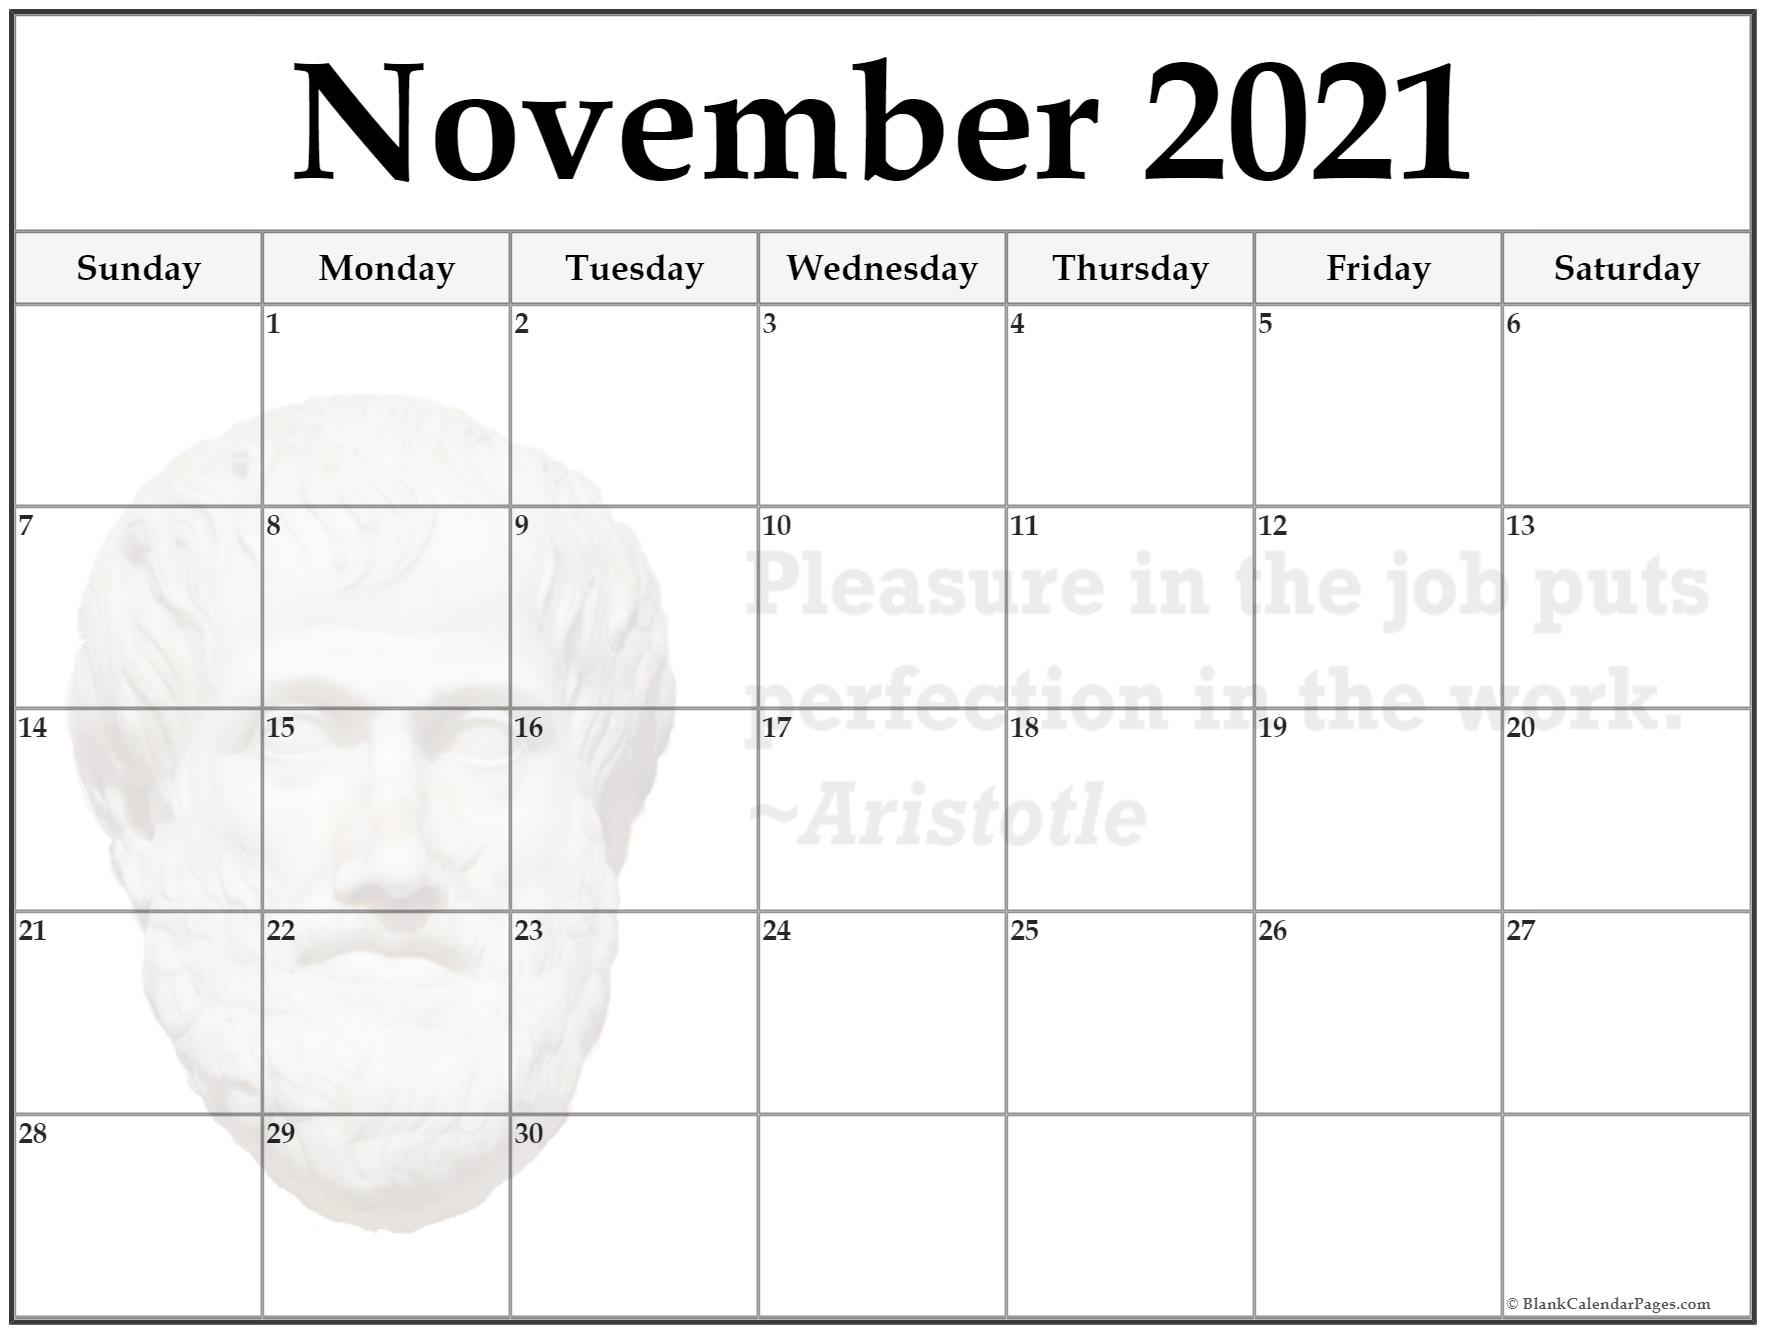 November calendar Pleasure in the job, puts perfection in the work ~Aristotle